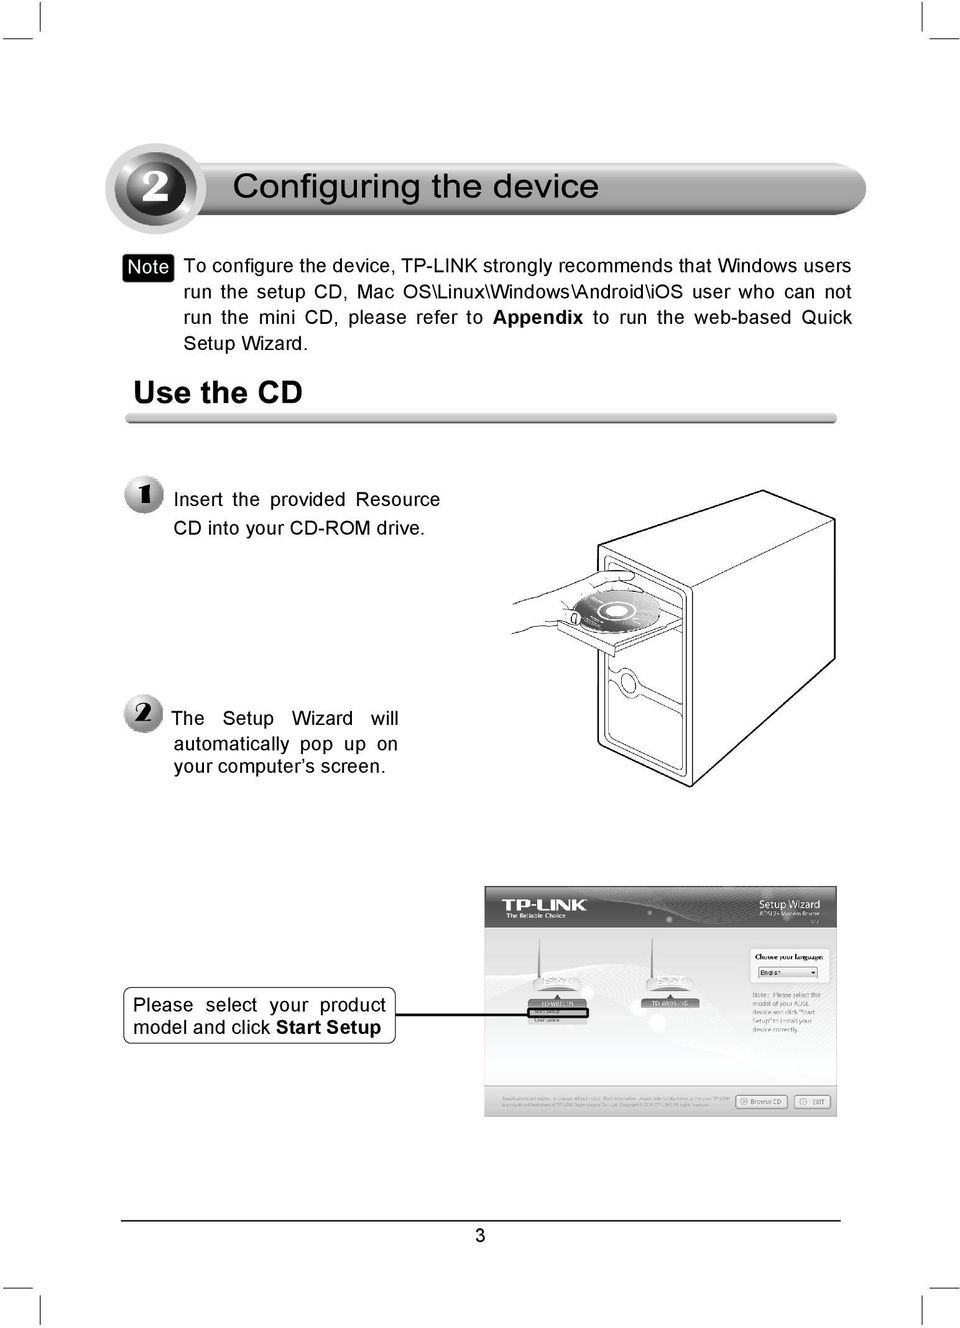 web-based Quick Setup Wizard. Insert the provided Resource CD into your CD-ROM drive.